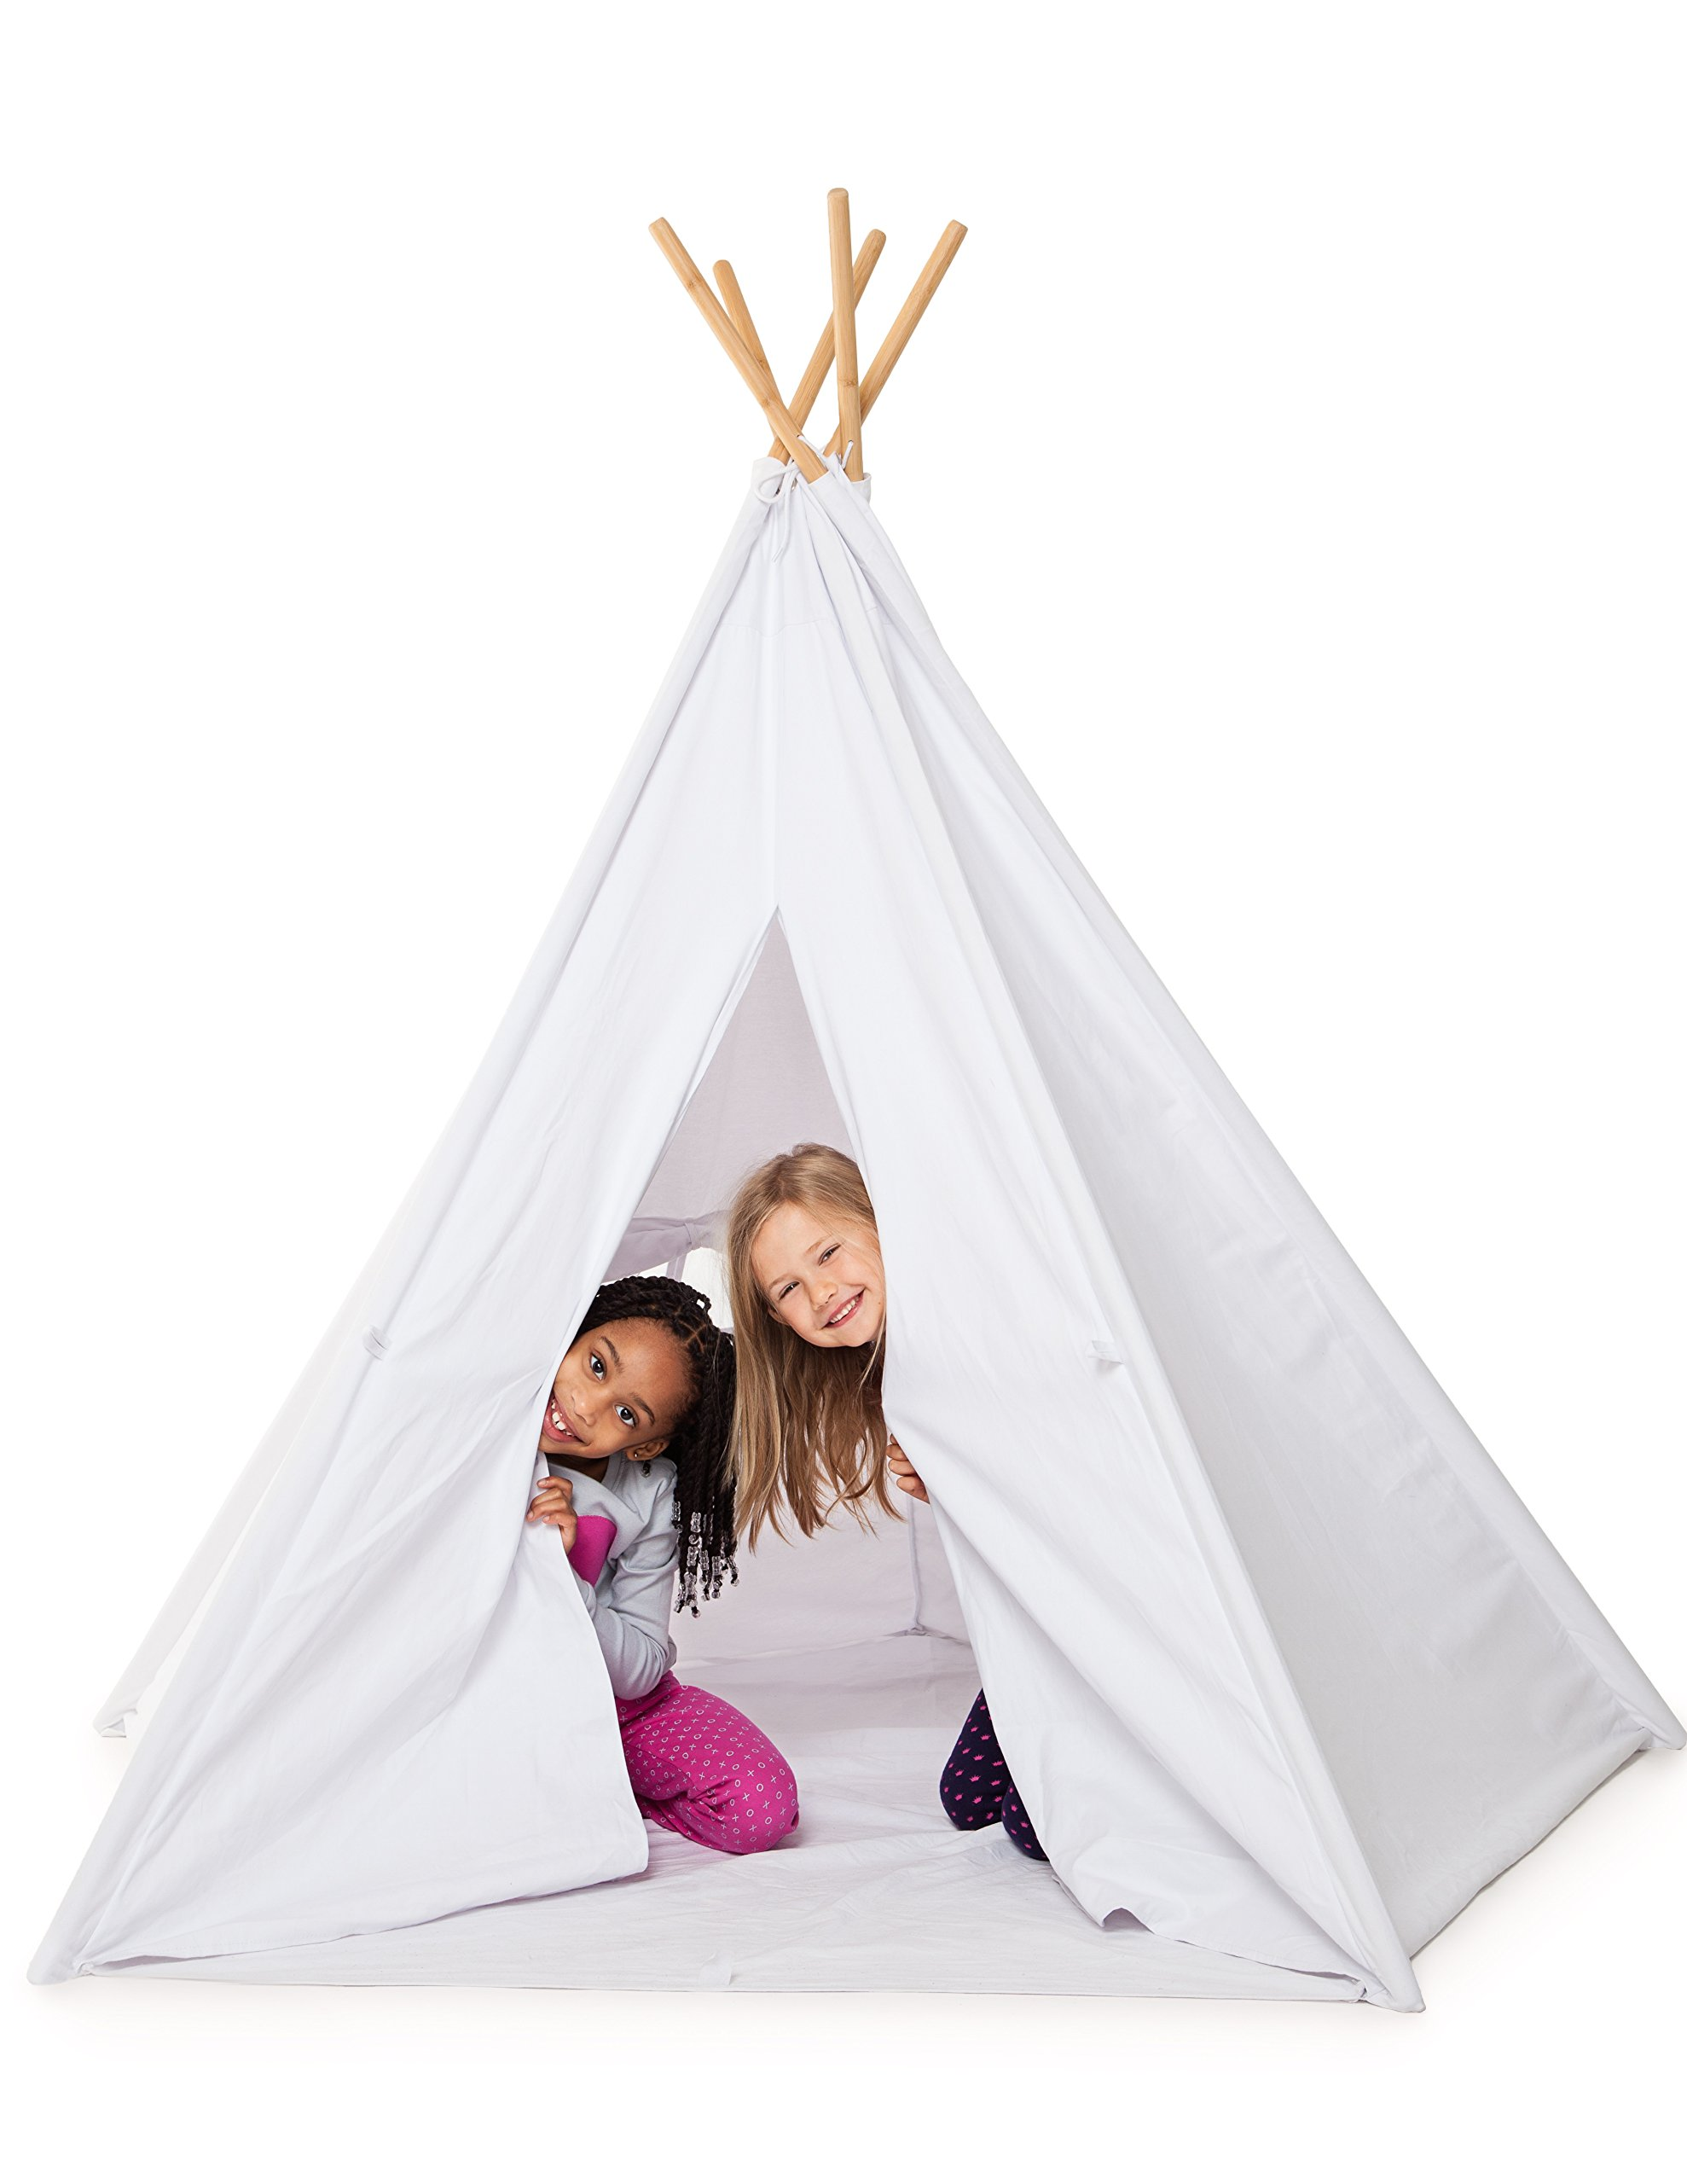 HUGE LUXURY TEEPEE 100% COTTON CANVAS! 5 BAMBOO POLES FLOOR and CARRYING CASE